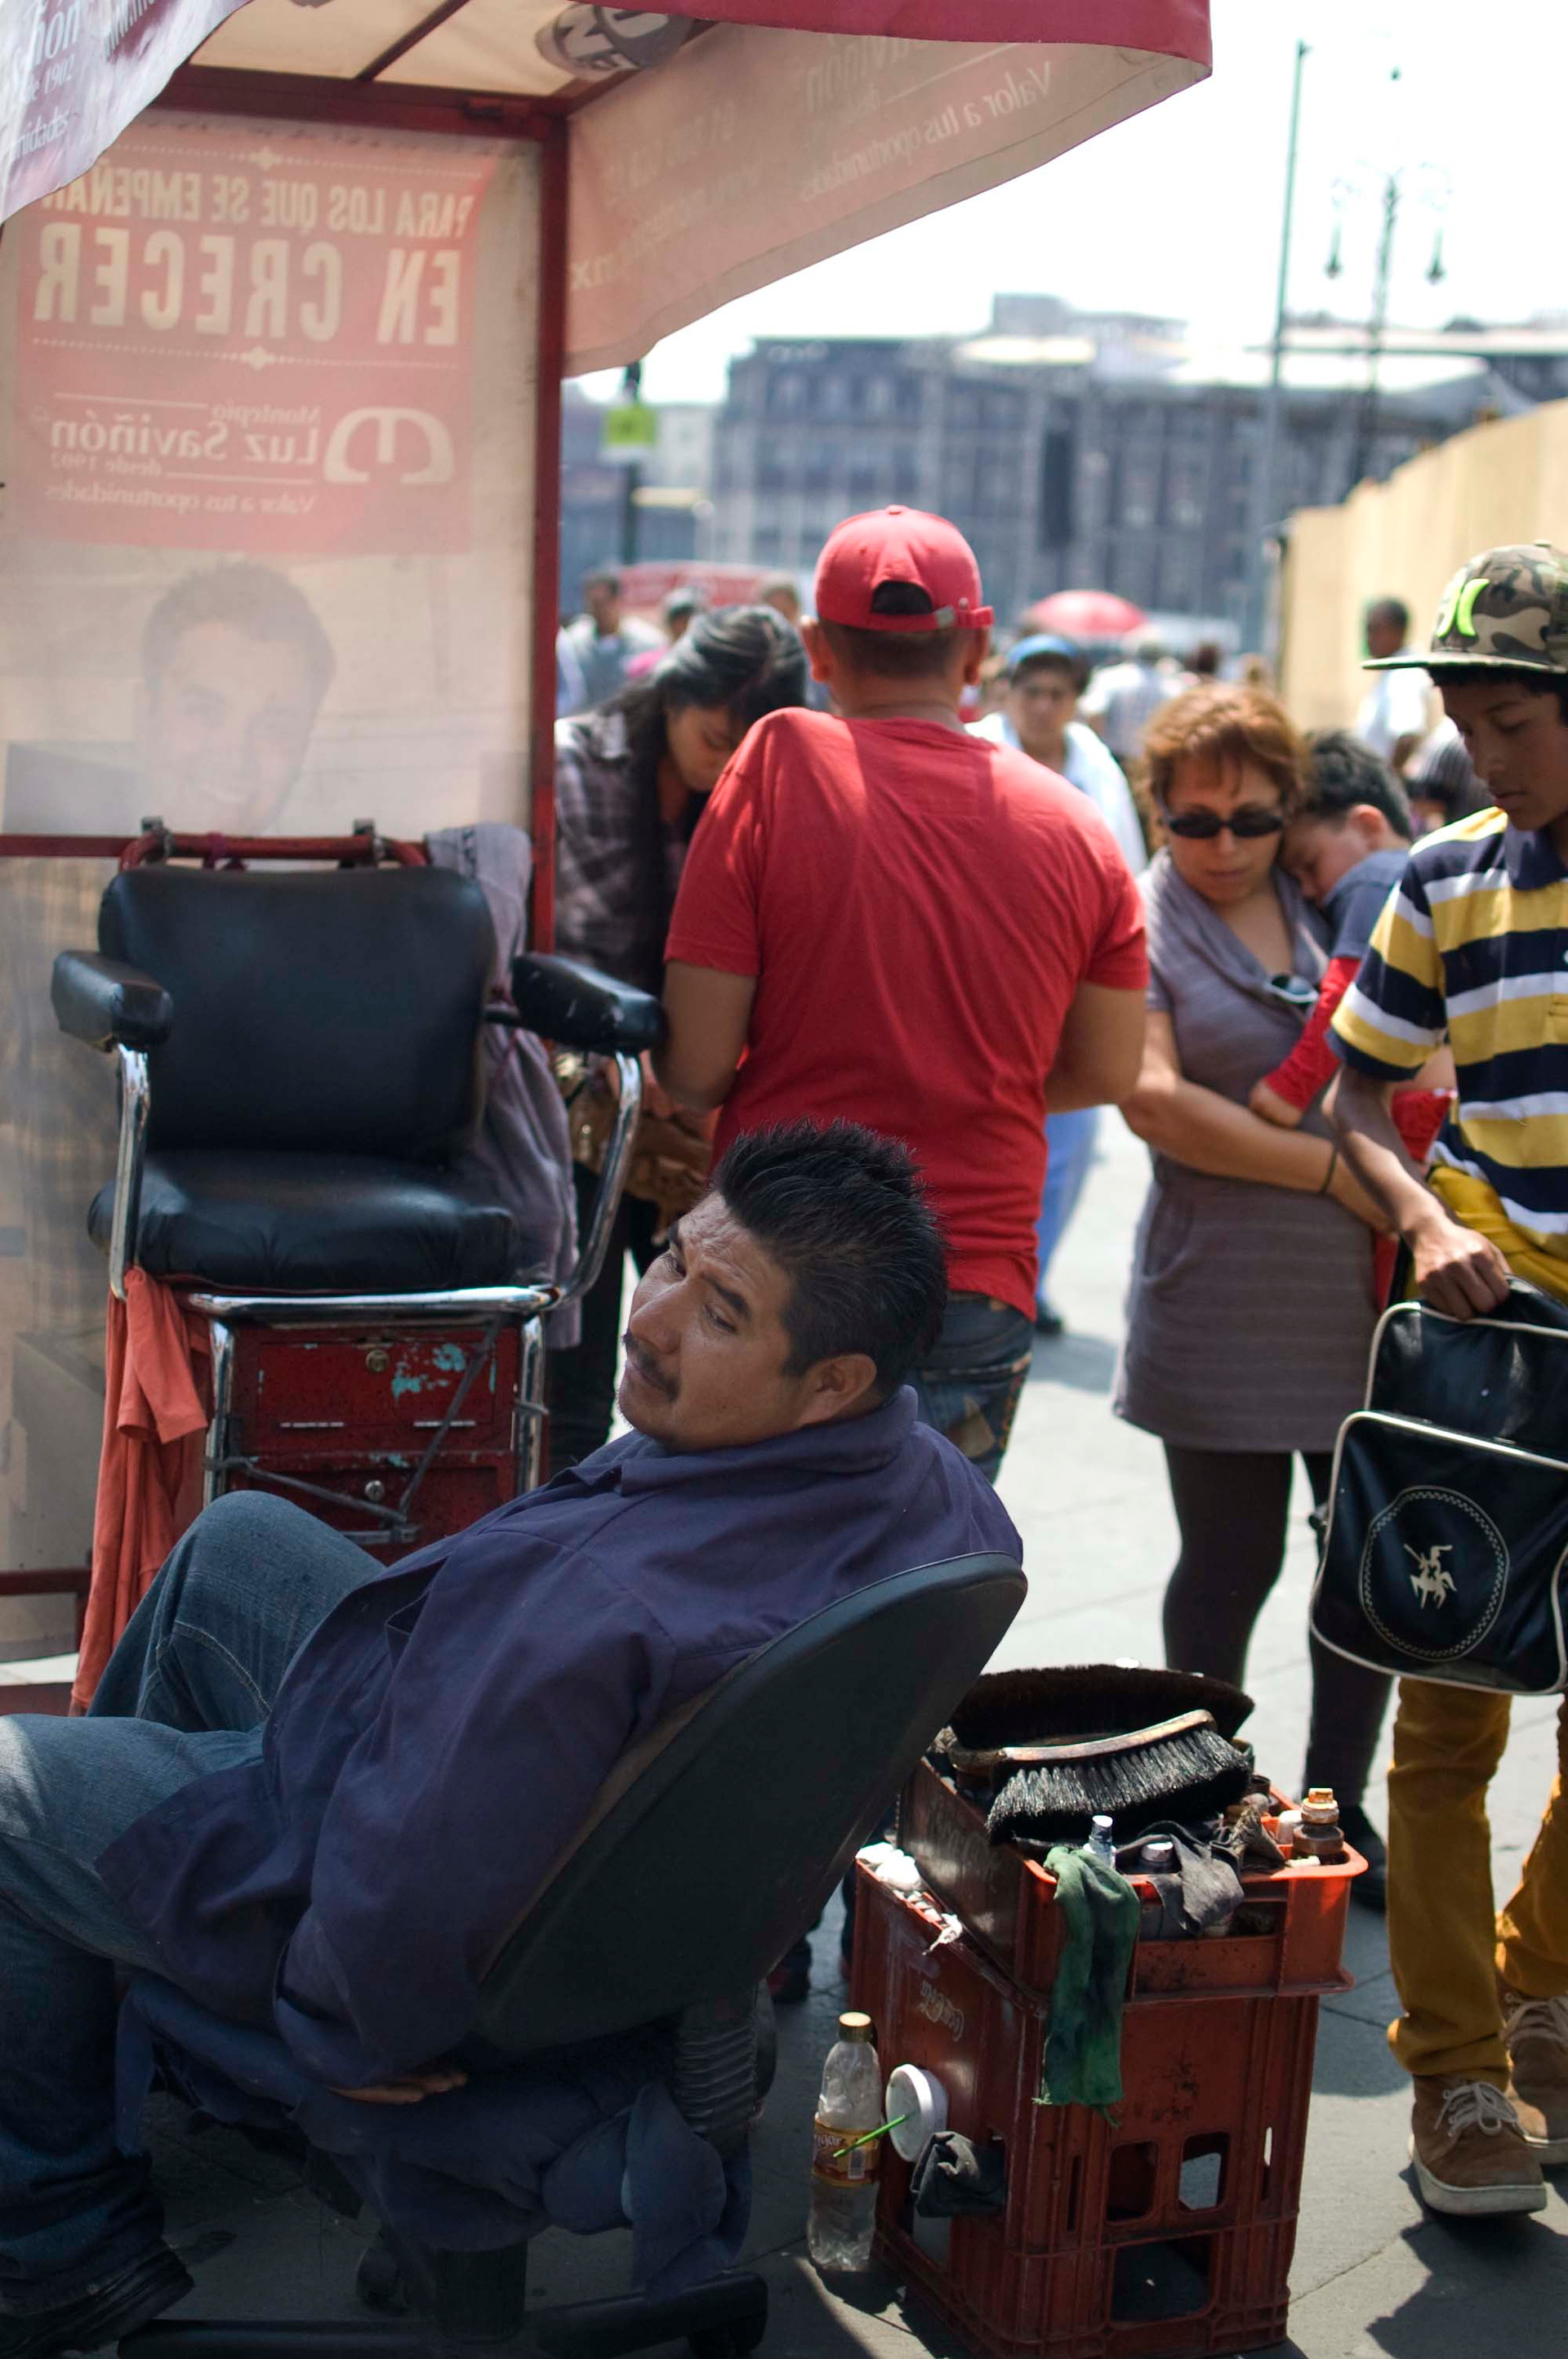 A shoe cleaner waits for customers, Centro Histórico, Mexico D.F., 2014